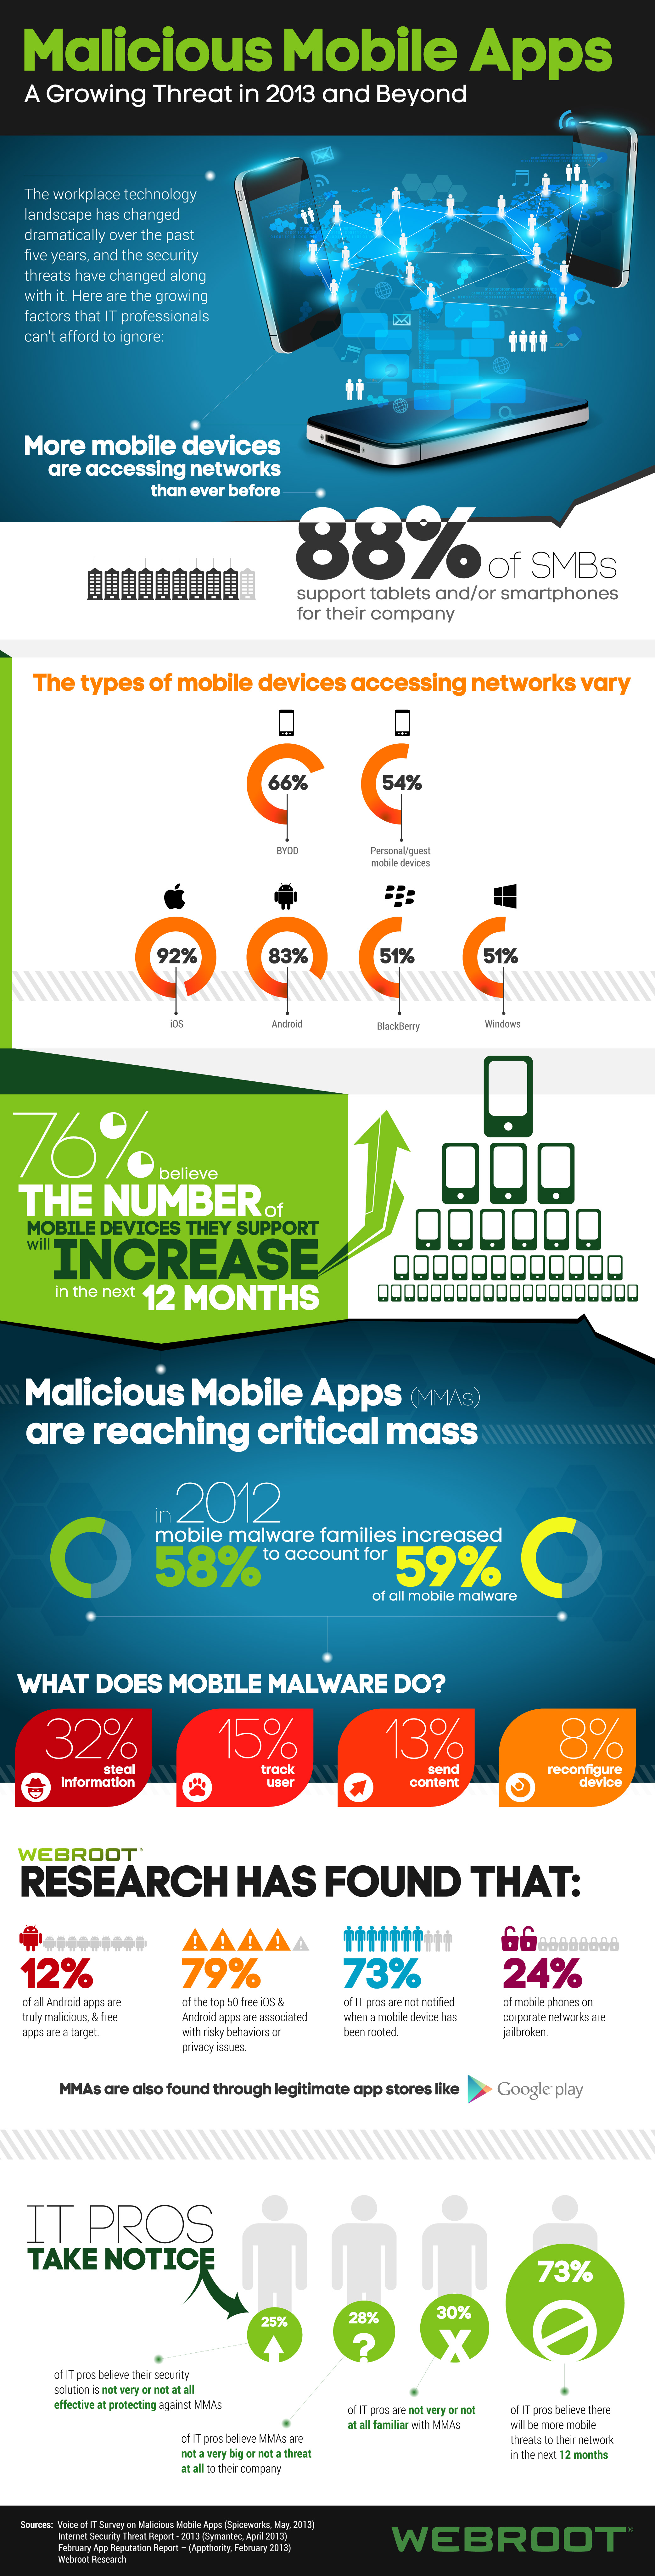 Malicious Mobile Apps - infographic